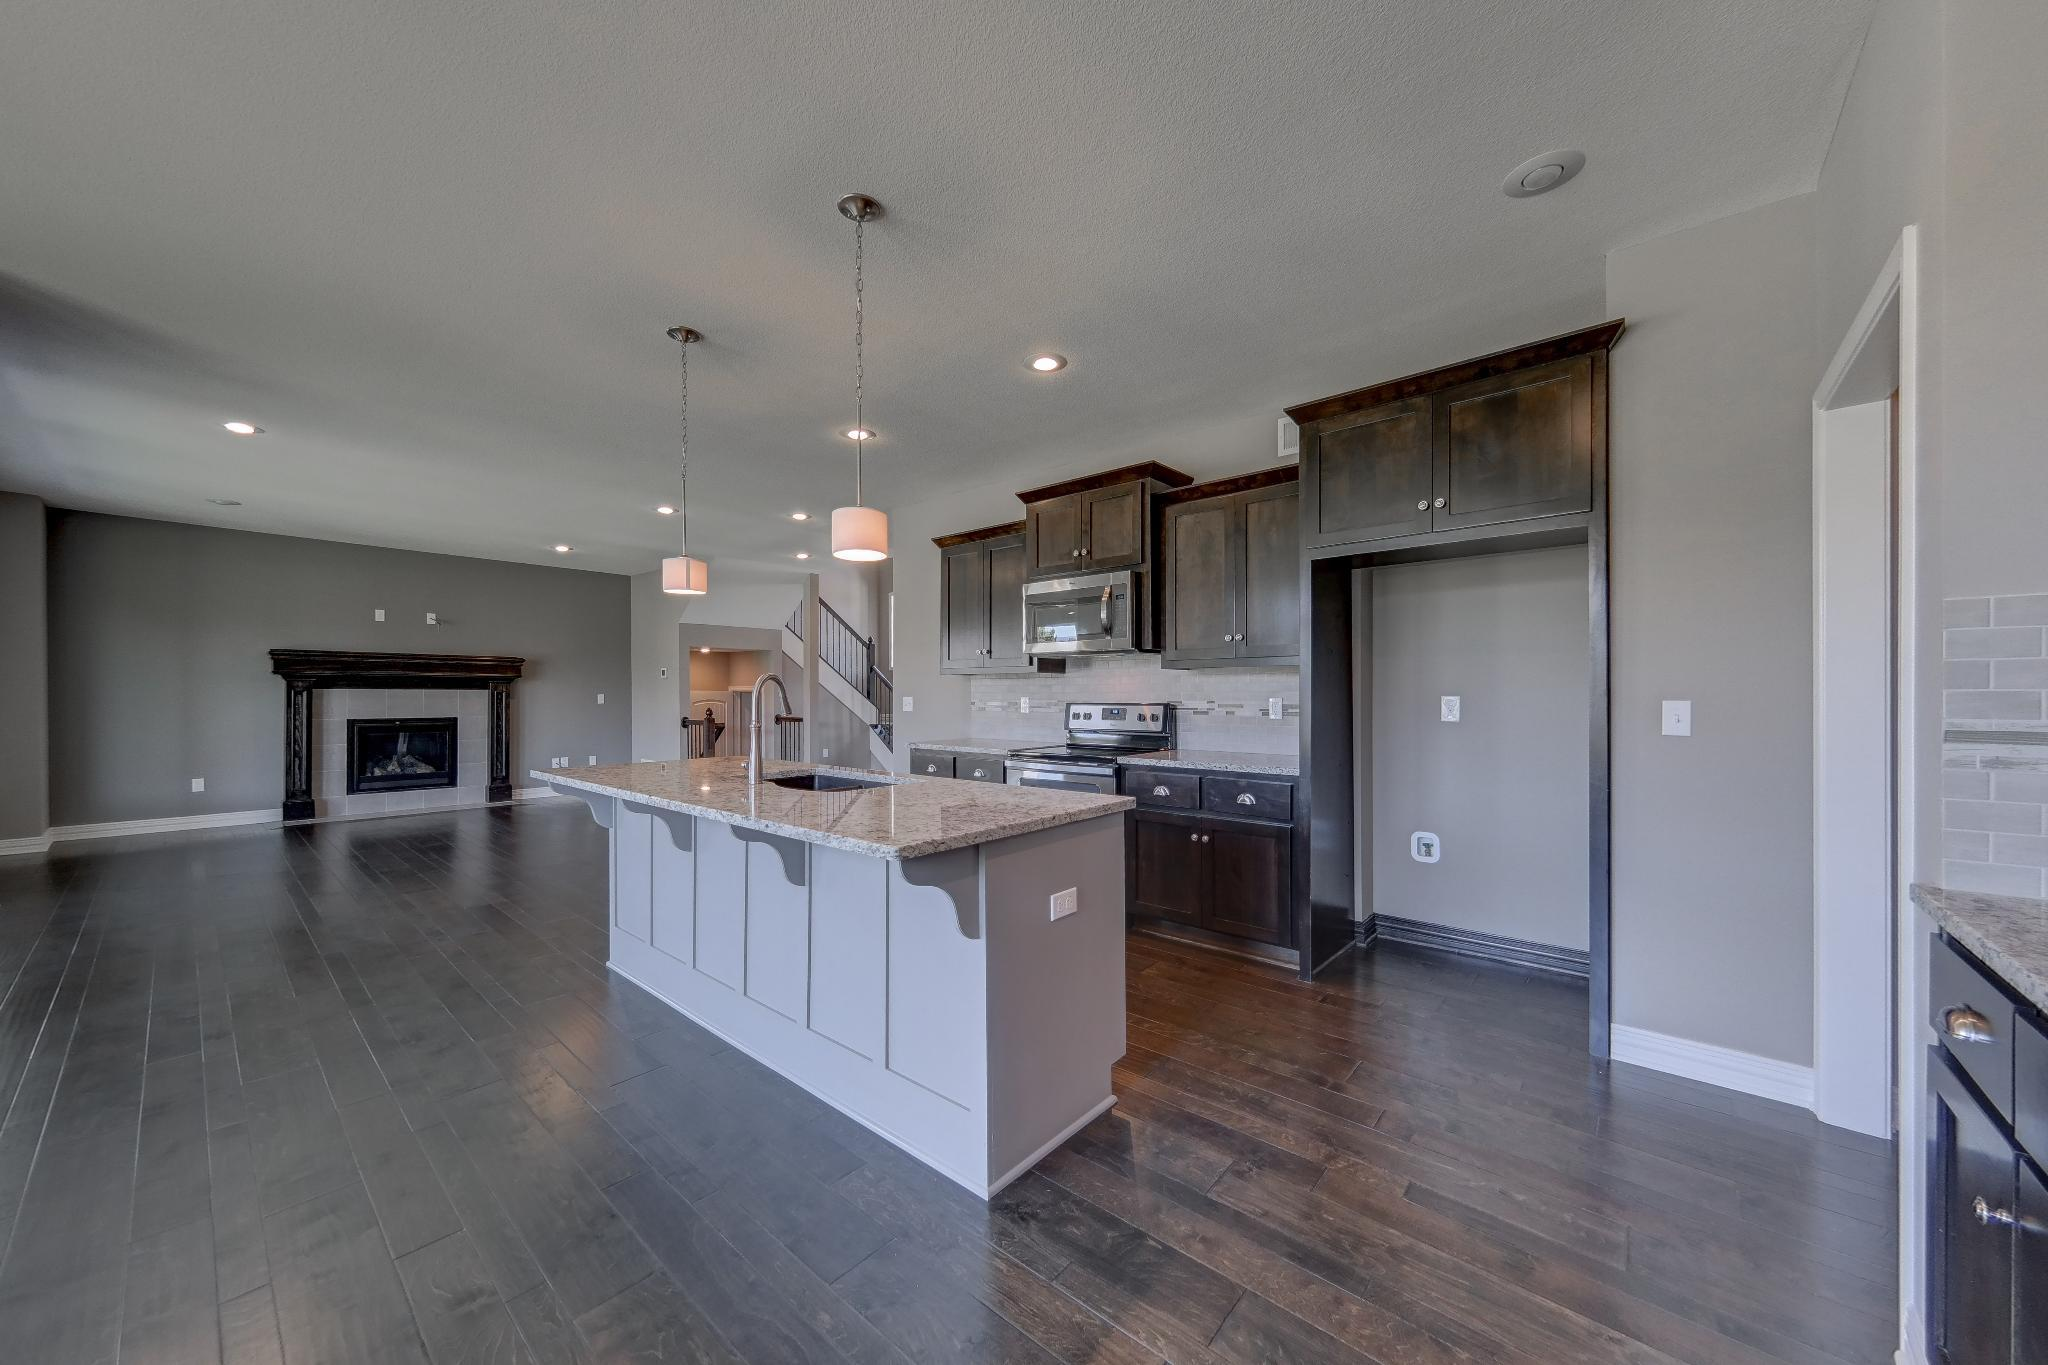 Kitchen featured in the Palmer II By Summit Homes in Kansas City, MO